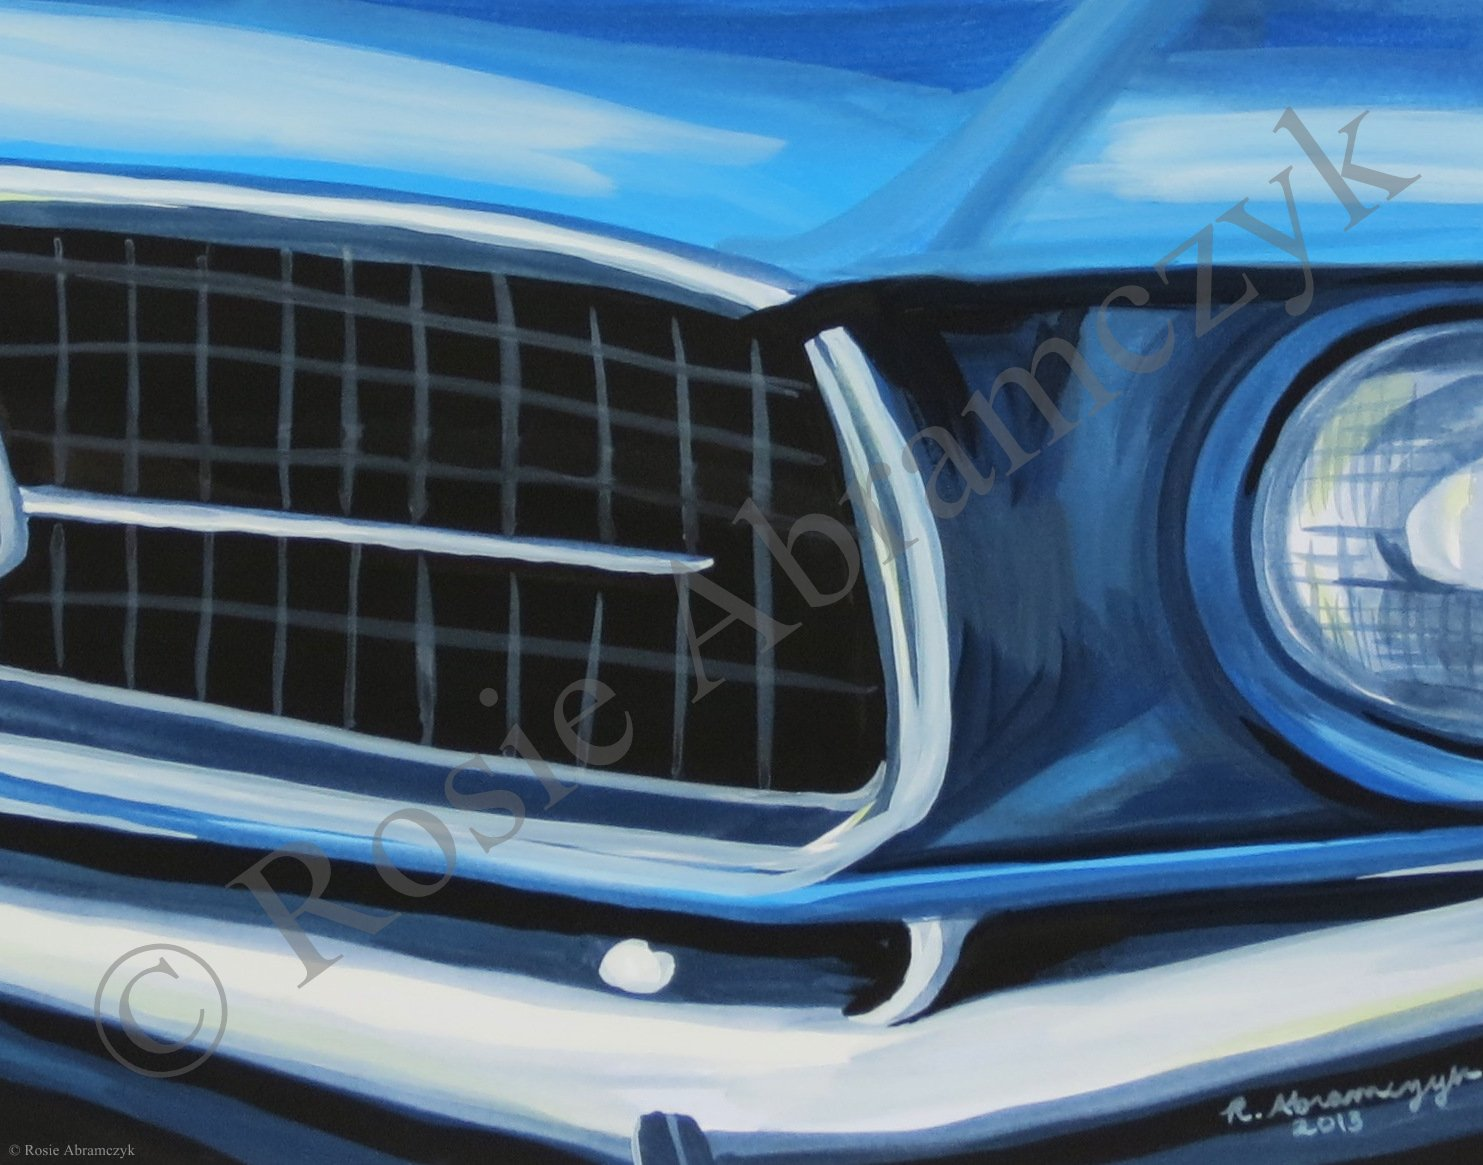 1967 Ford Mustang, by Rosie Abramczyk, Gouache Paint, 2013